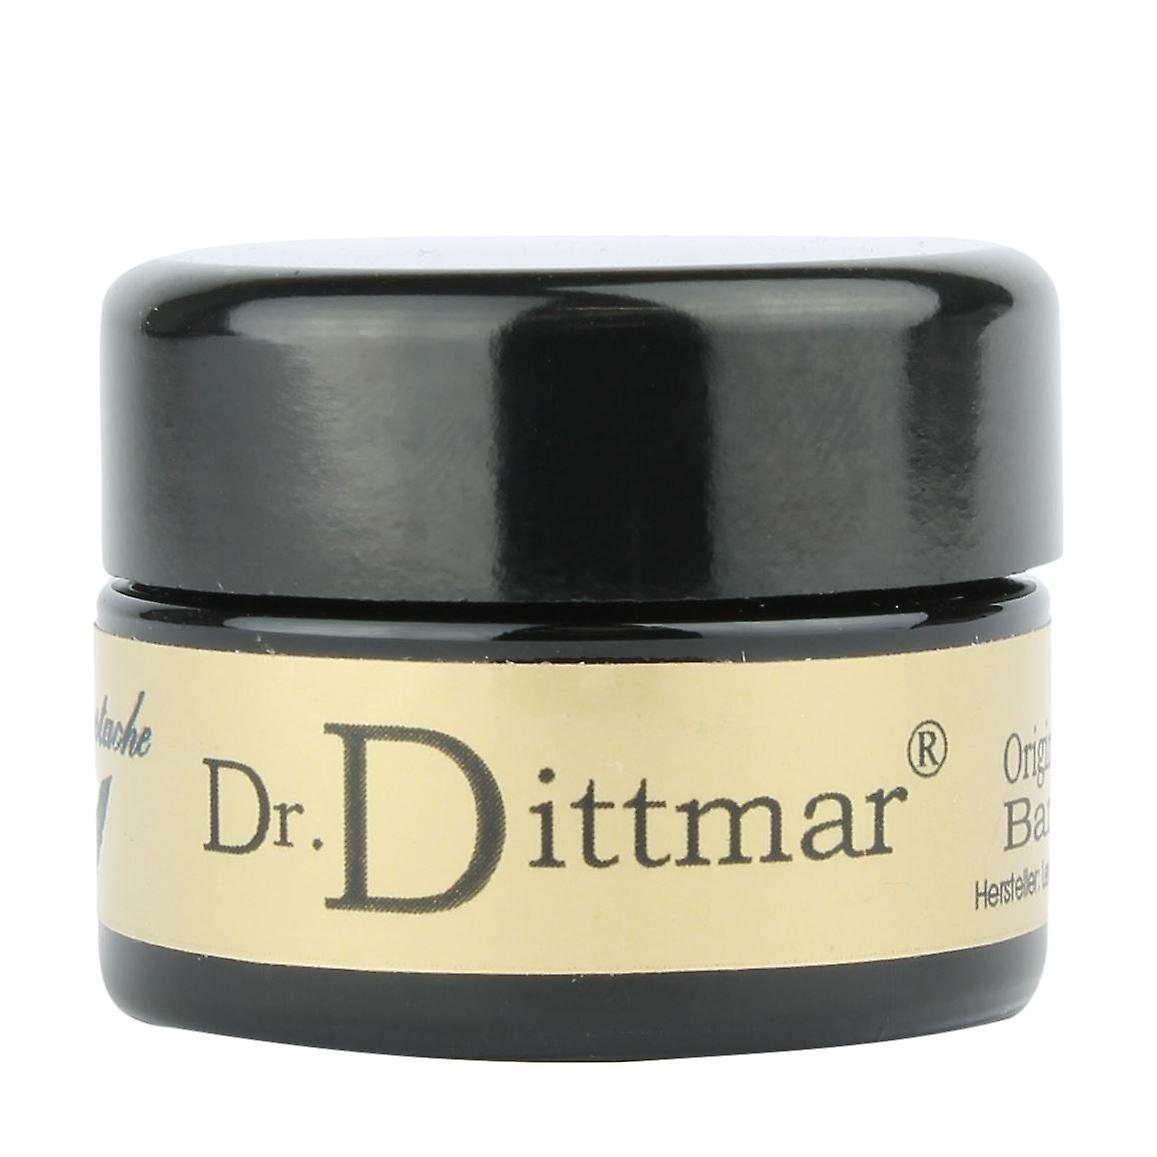 Dr. Dittmar Original Hungarian Moustache Wax 16ml